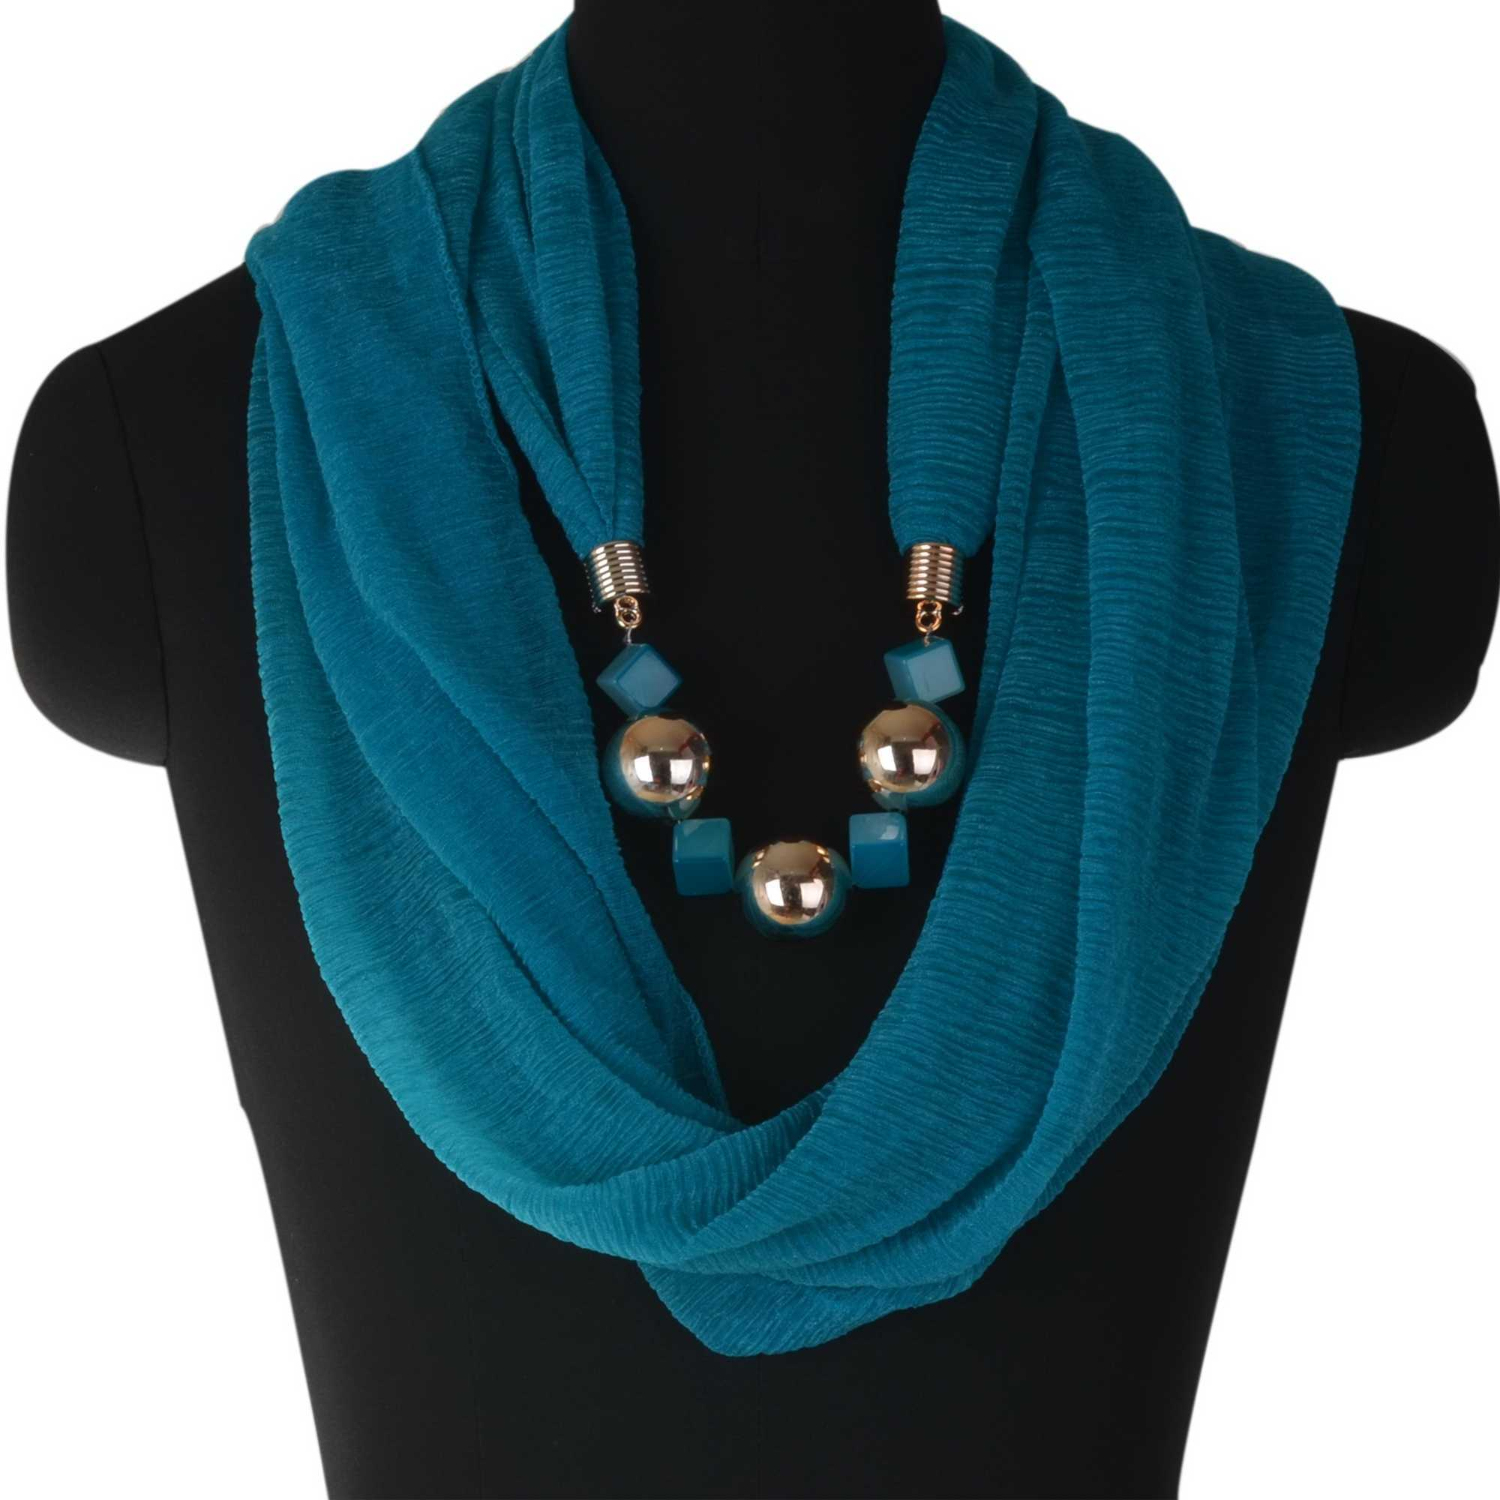 Bohemian vogue neck wrap stole collar scarf necklace pendant bohemian vogue neck wrap stole collar scarf necklace aloadofball Choice Image